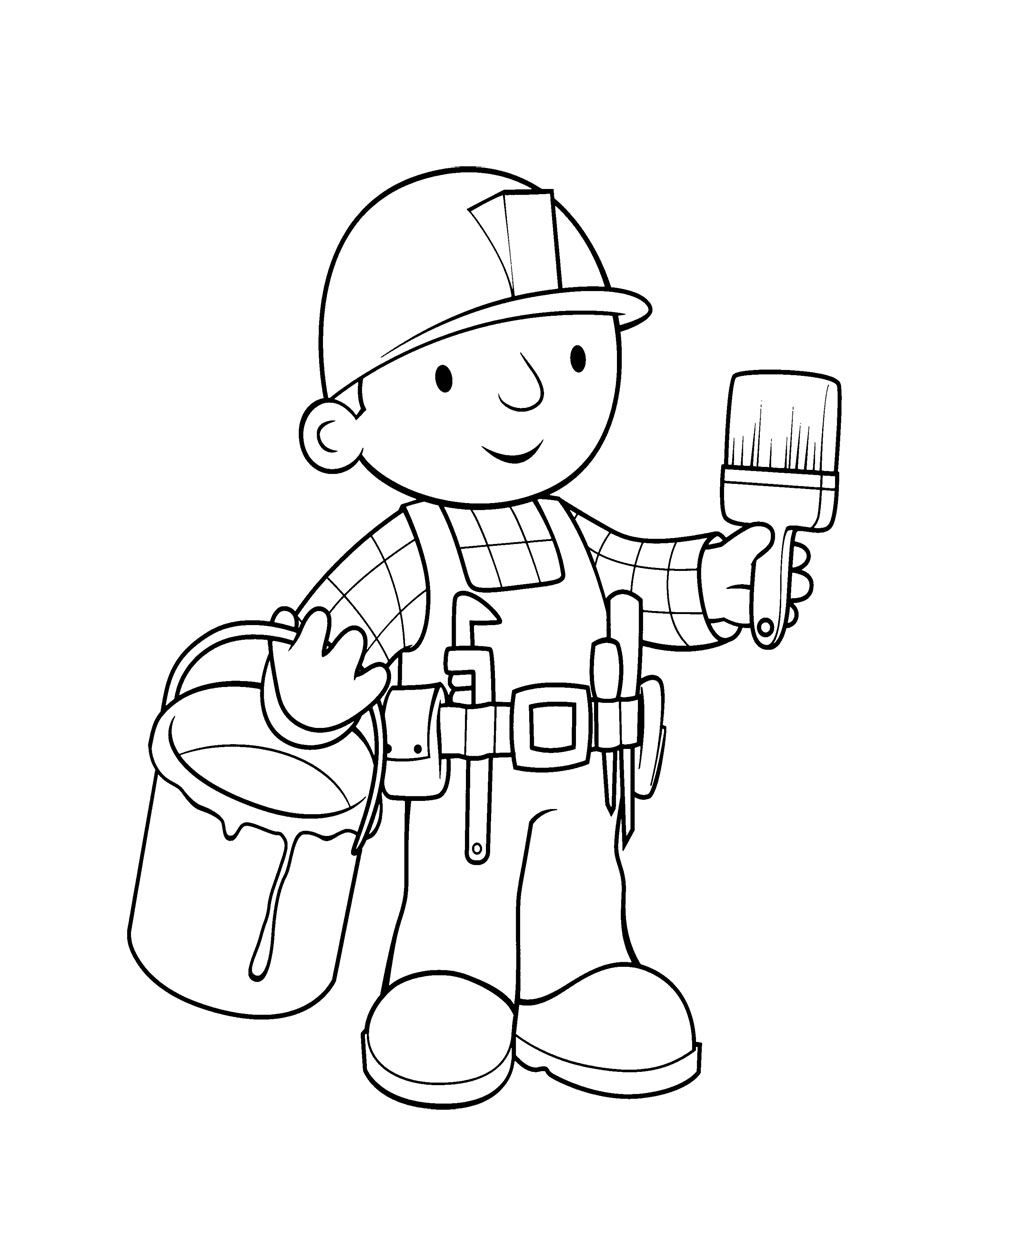 Bob The Builder And Paintbrish Coloring Page For Kids